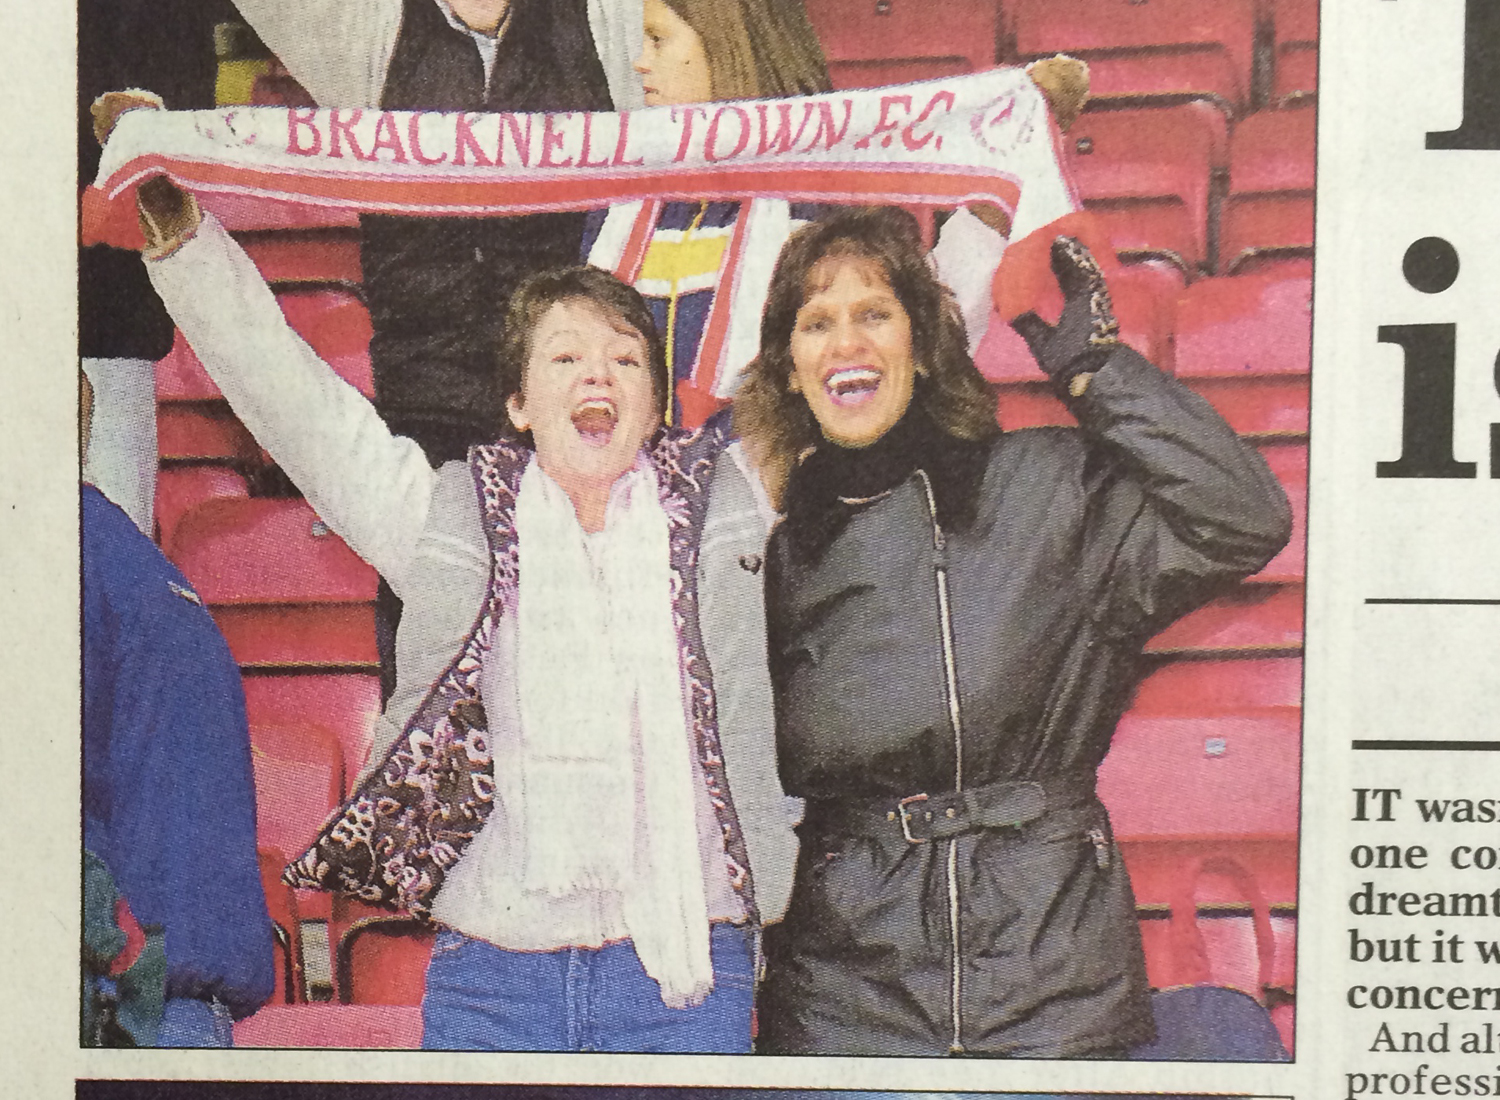 Bracknell Town supporters at Lincoln City FC for the 1999 FA Cup First Round Proper tie. Photo: Wokingham Times.